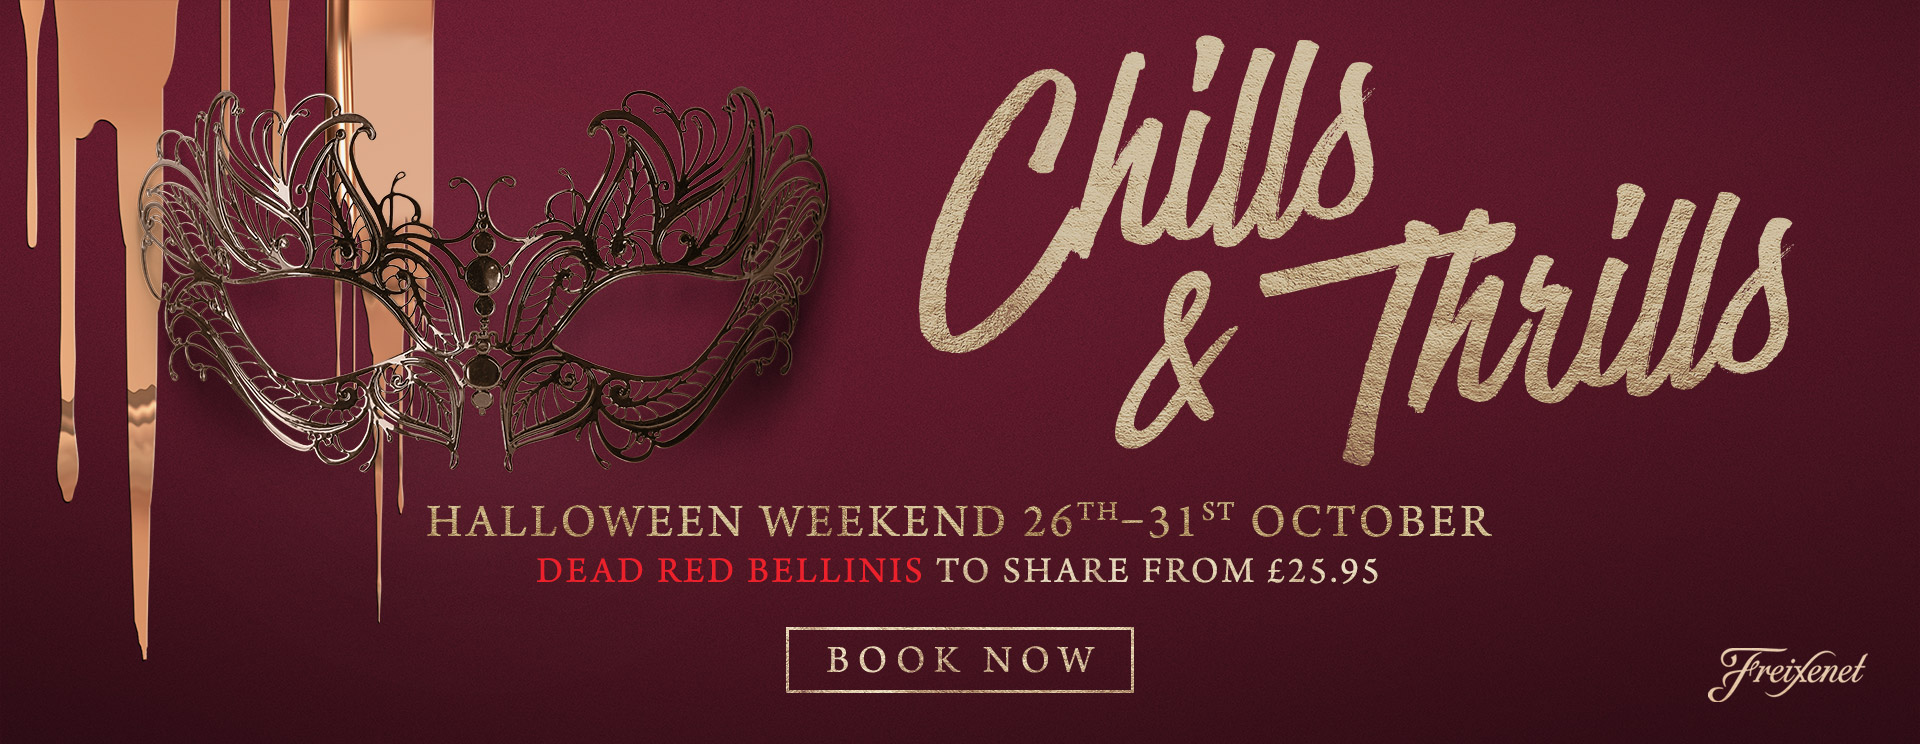 Chills & Thrills this Halloween at The Derby Arms